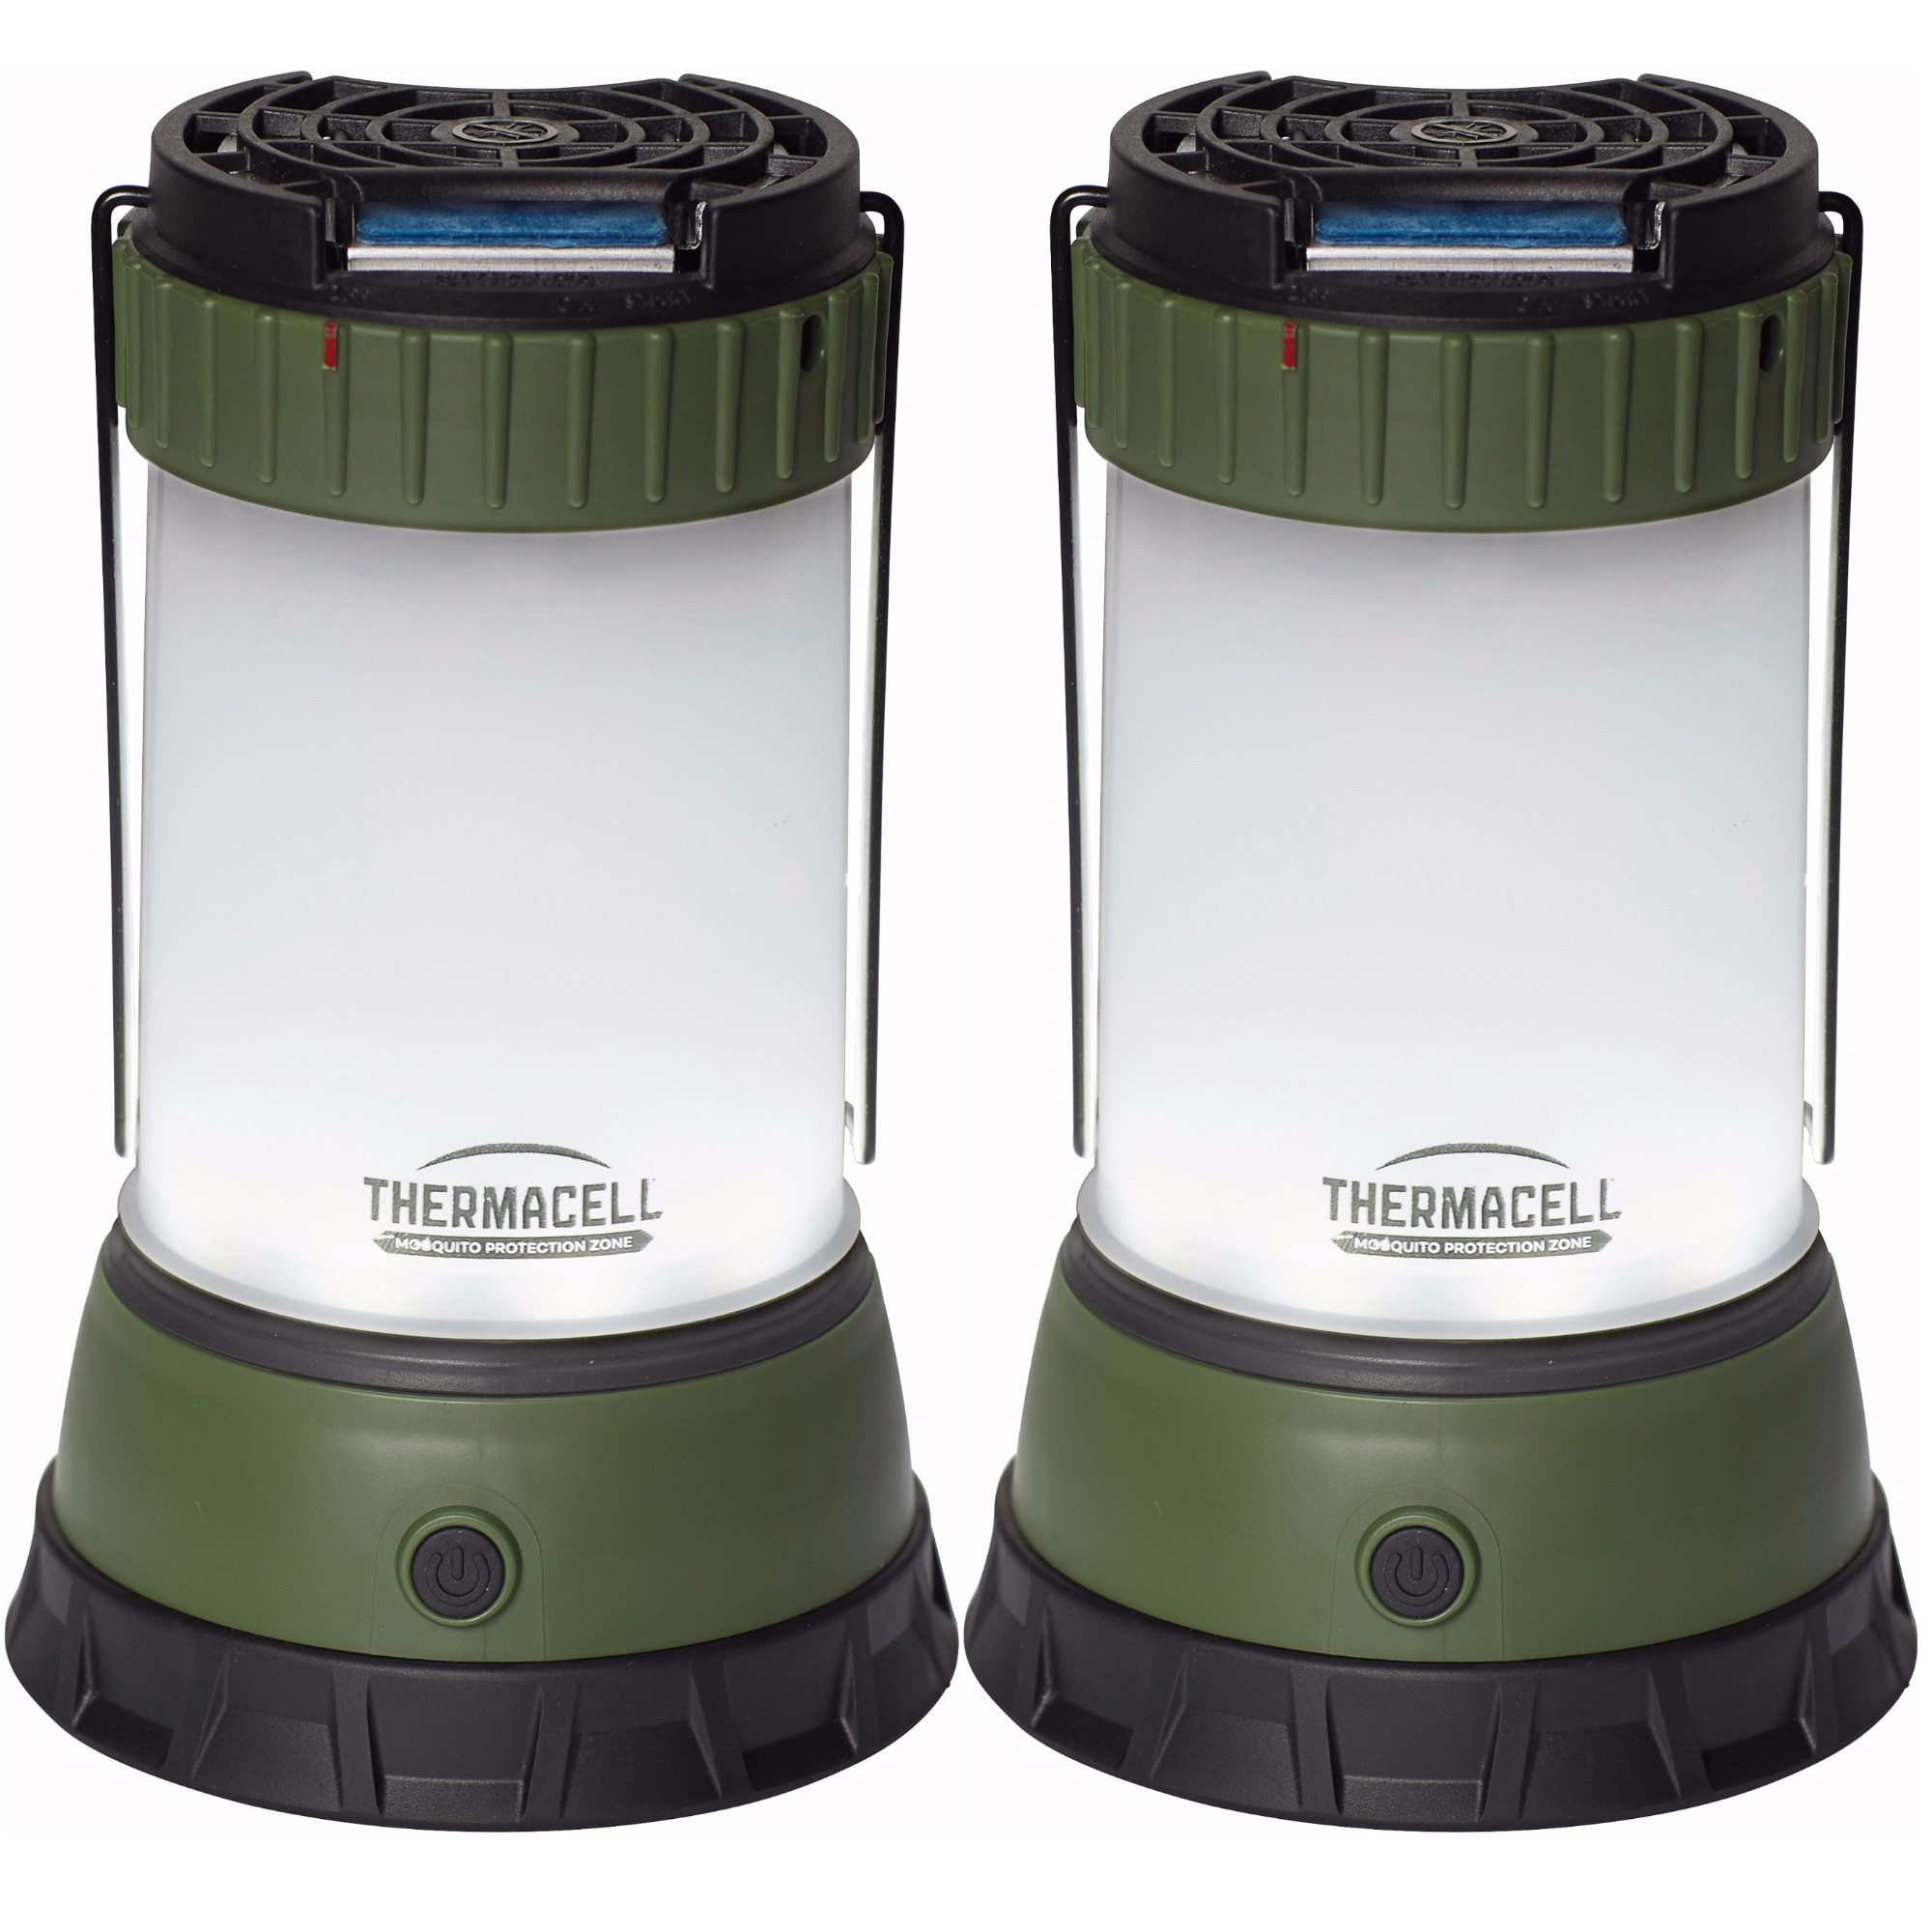 ThermaCELL Mosquito Repellent Pest Control Outdoor and Camping Lanterns: 2-Pack by Thermacell